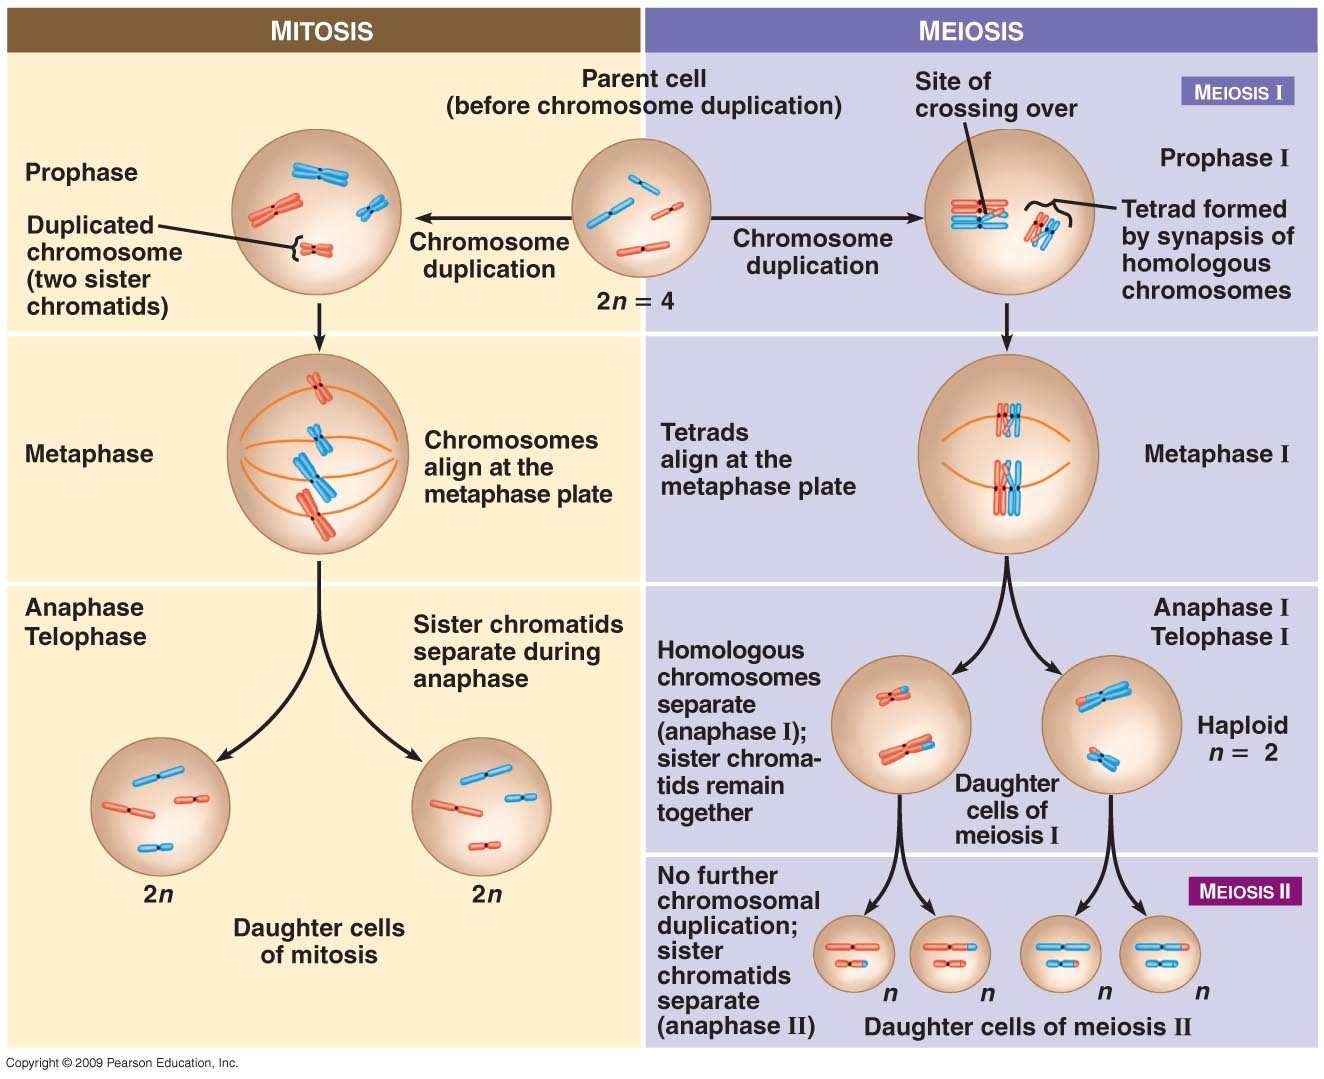 escience lab 11 mitosis Mitosis and meiosis introduction 3-i mitosis key concepts i concept 1: the  cell cycle closer look: nuclear division (karyokinesis) closer look:  interphase.